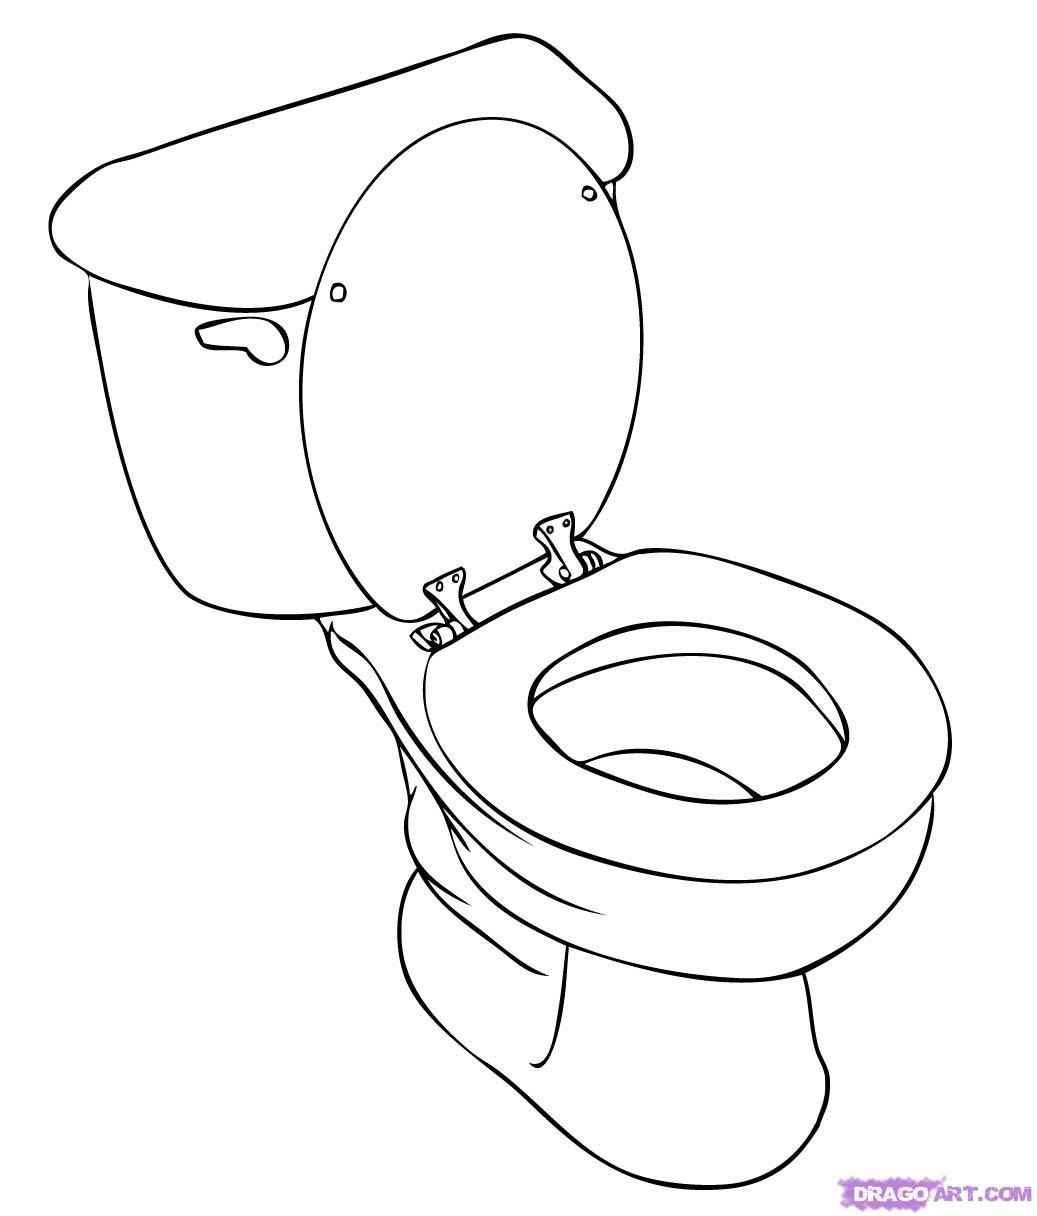 Toilet clipart the cliparts.